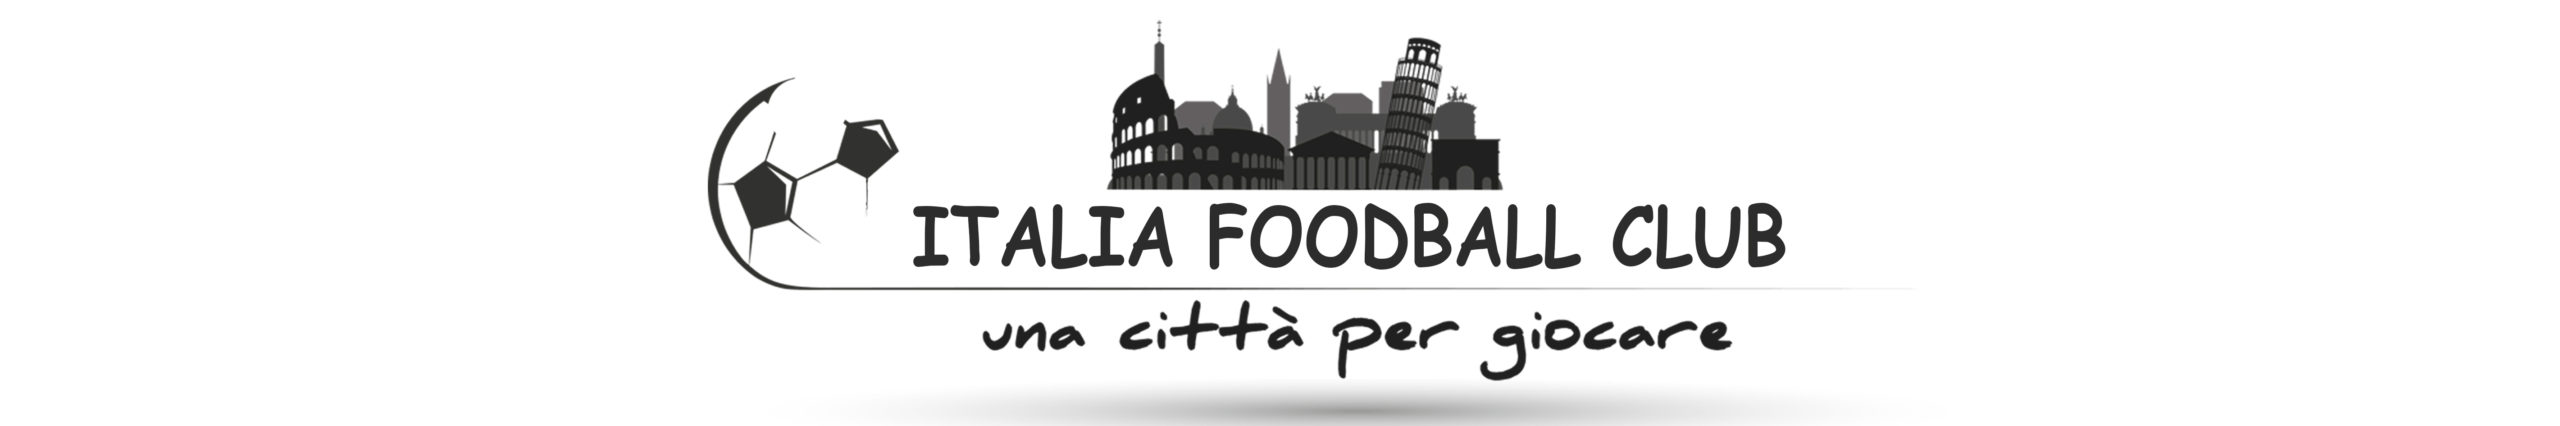 Italia Foodball Club